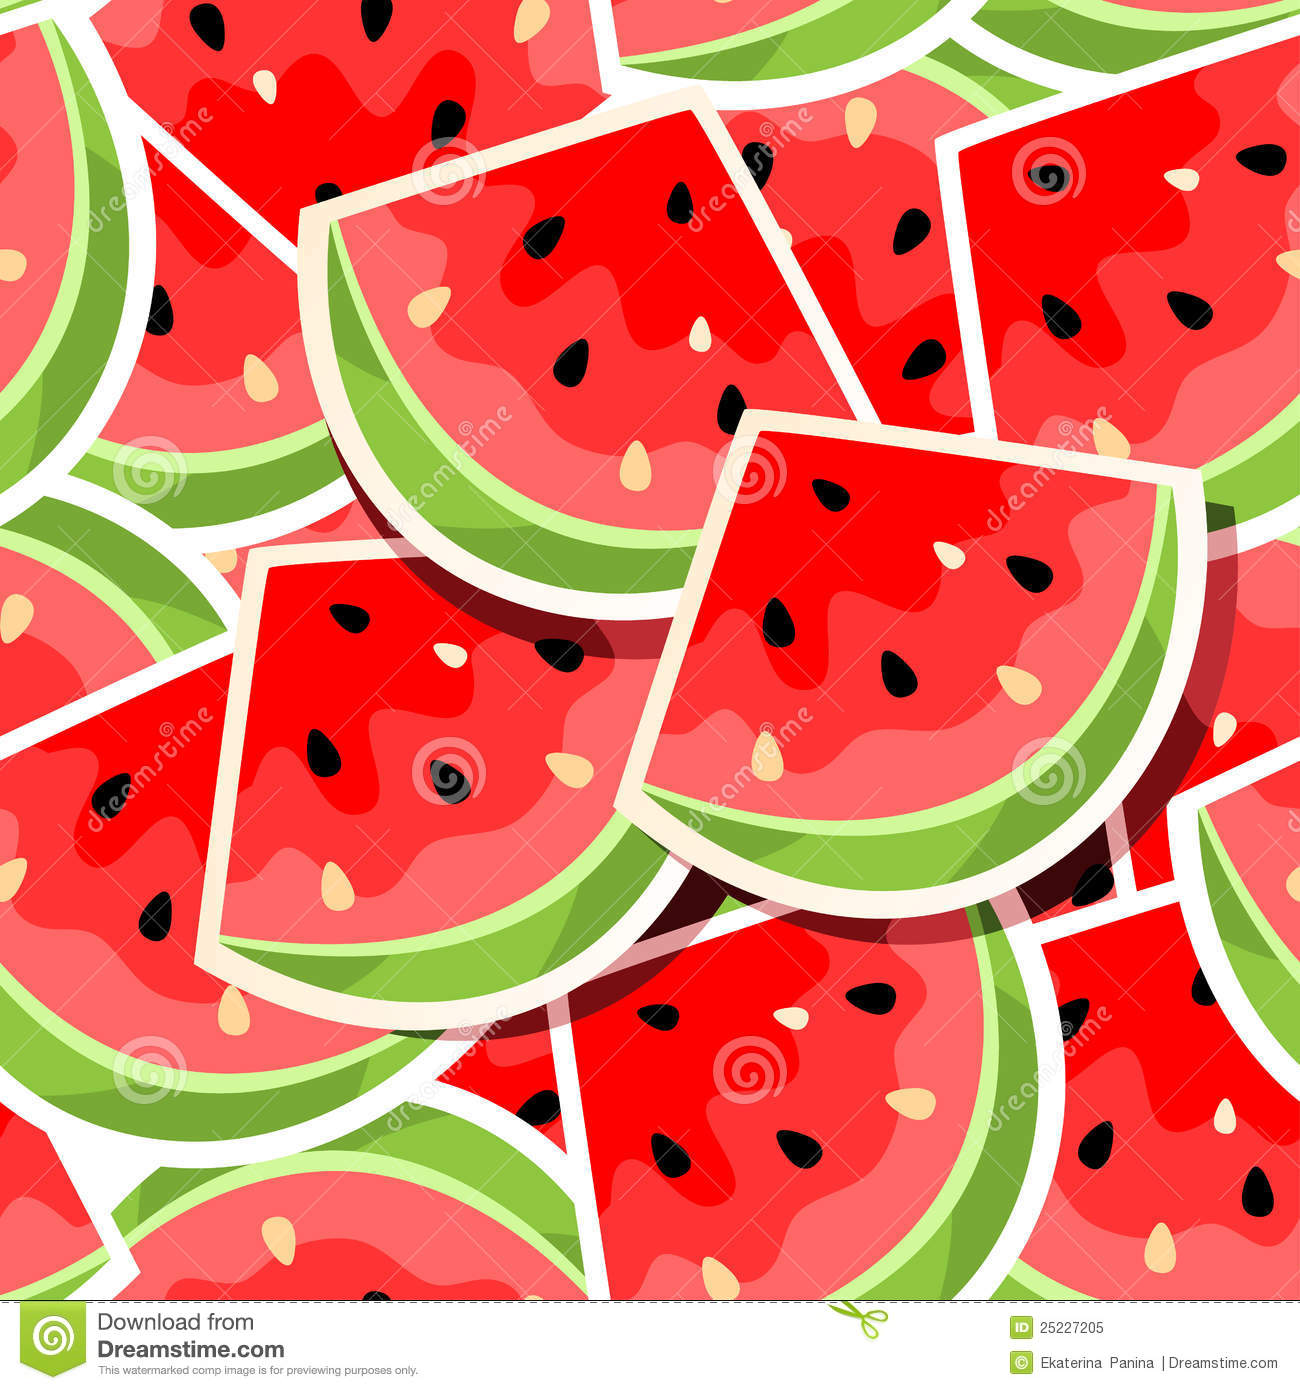 tumblr backgrounds watermelon background - photo #19